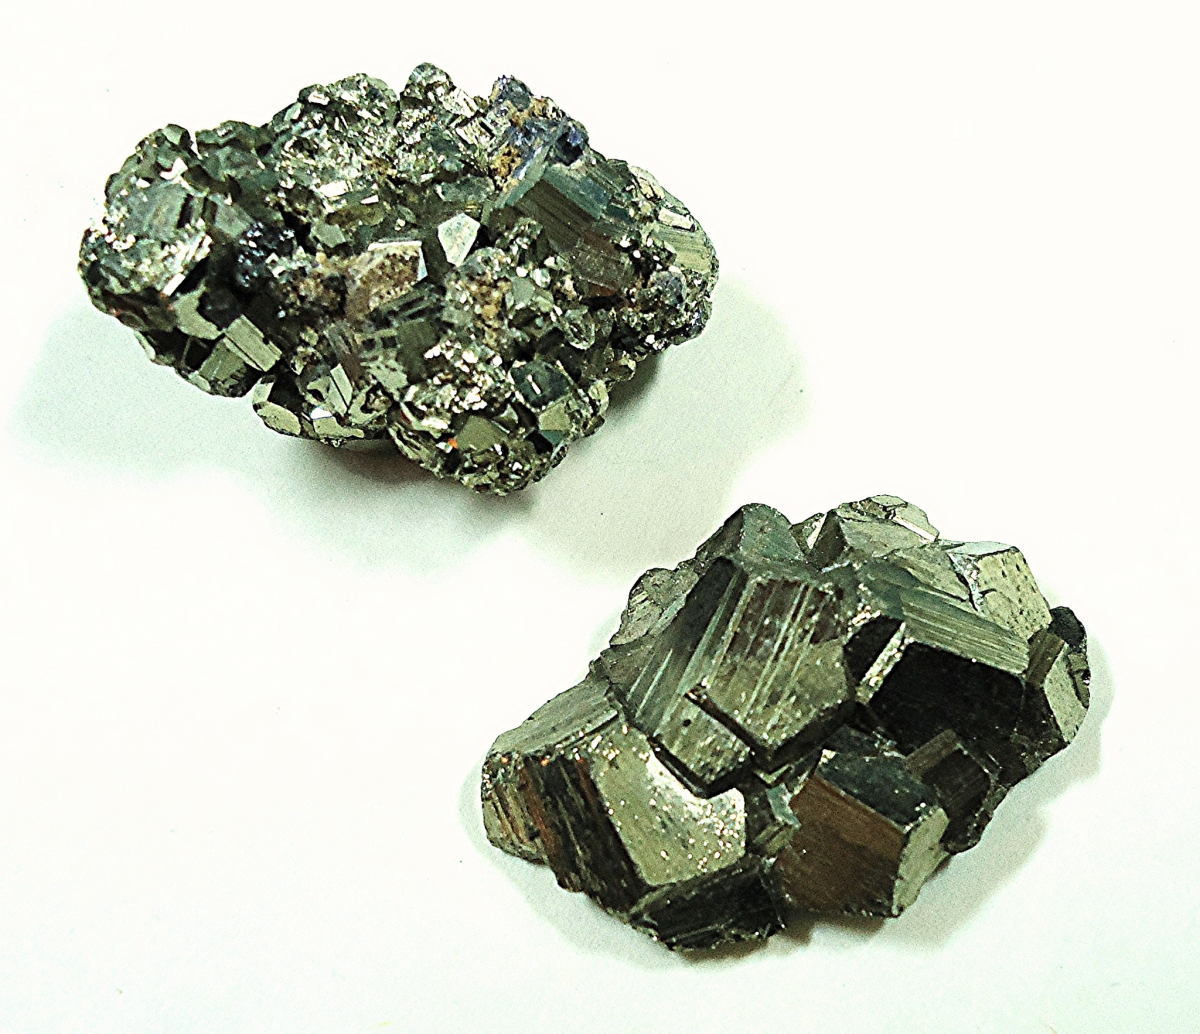 Pyrite (also known as fool's gold) is considered a lucky stone to have.